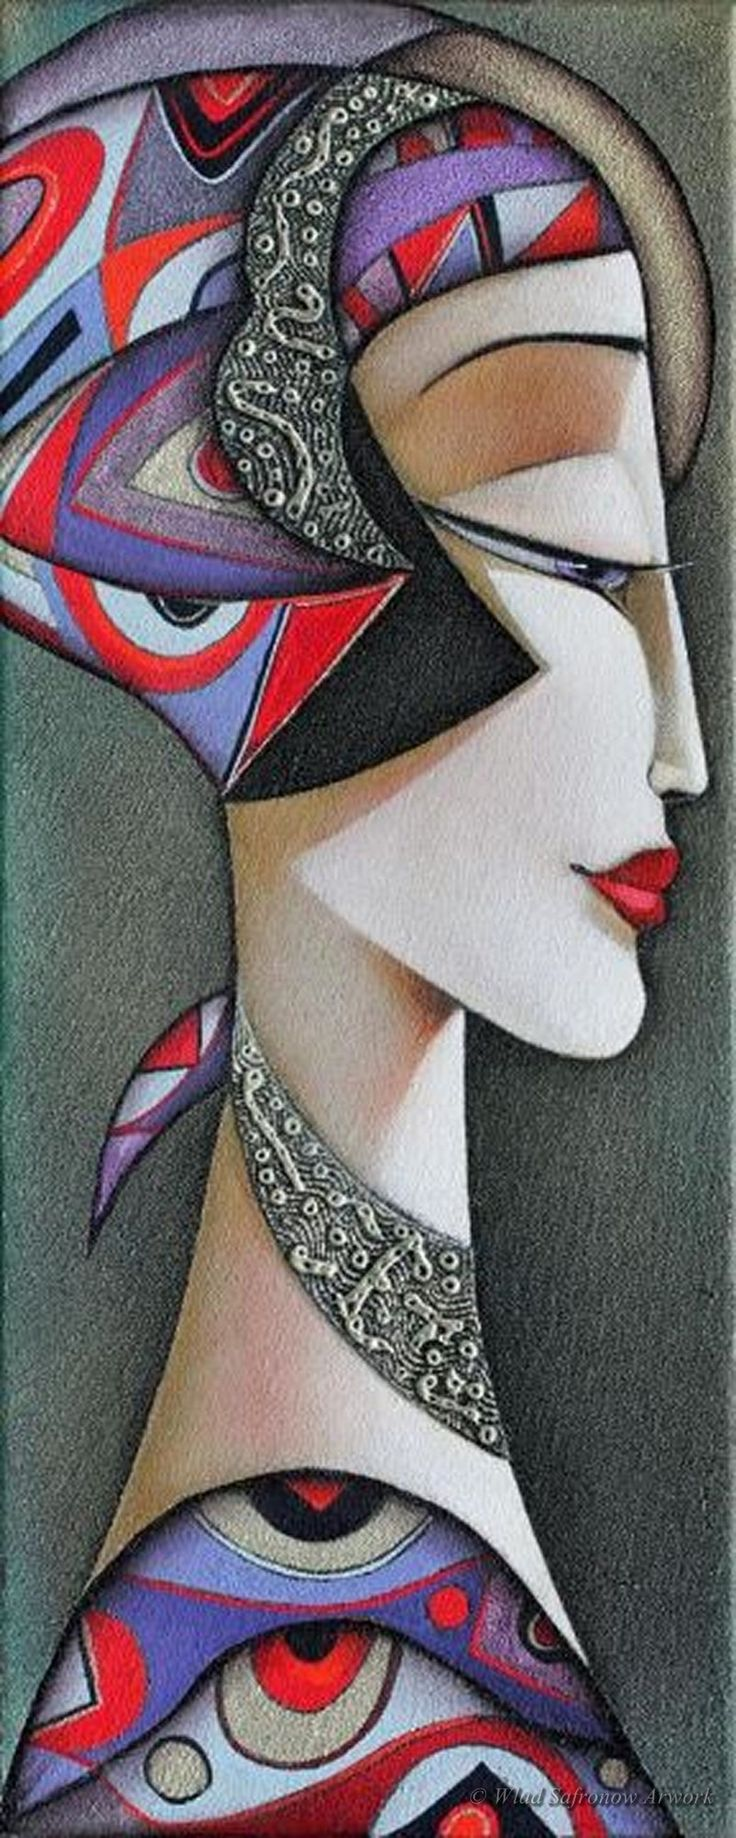 Anaïs by Wlad Safronow. (Oil Canvas)